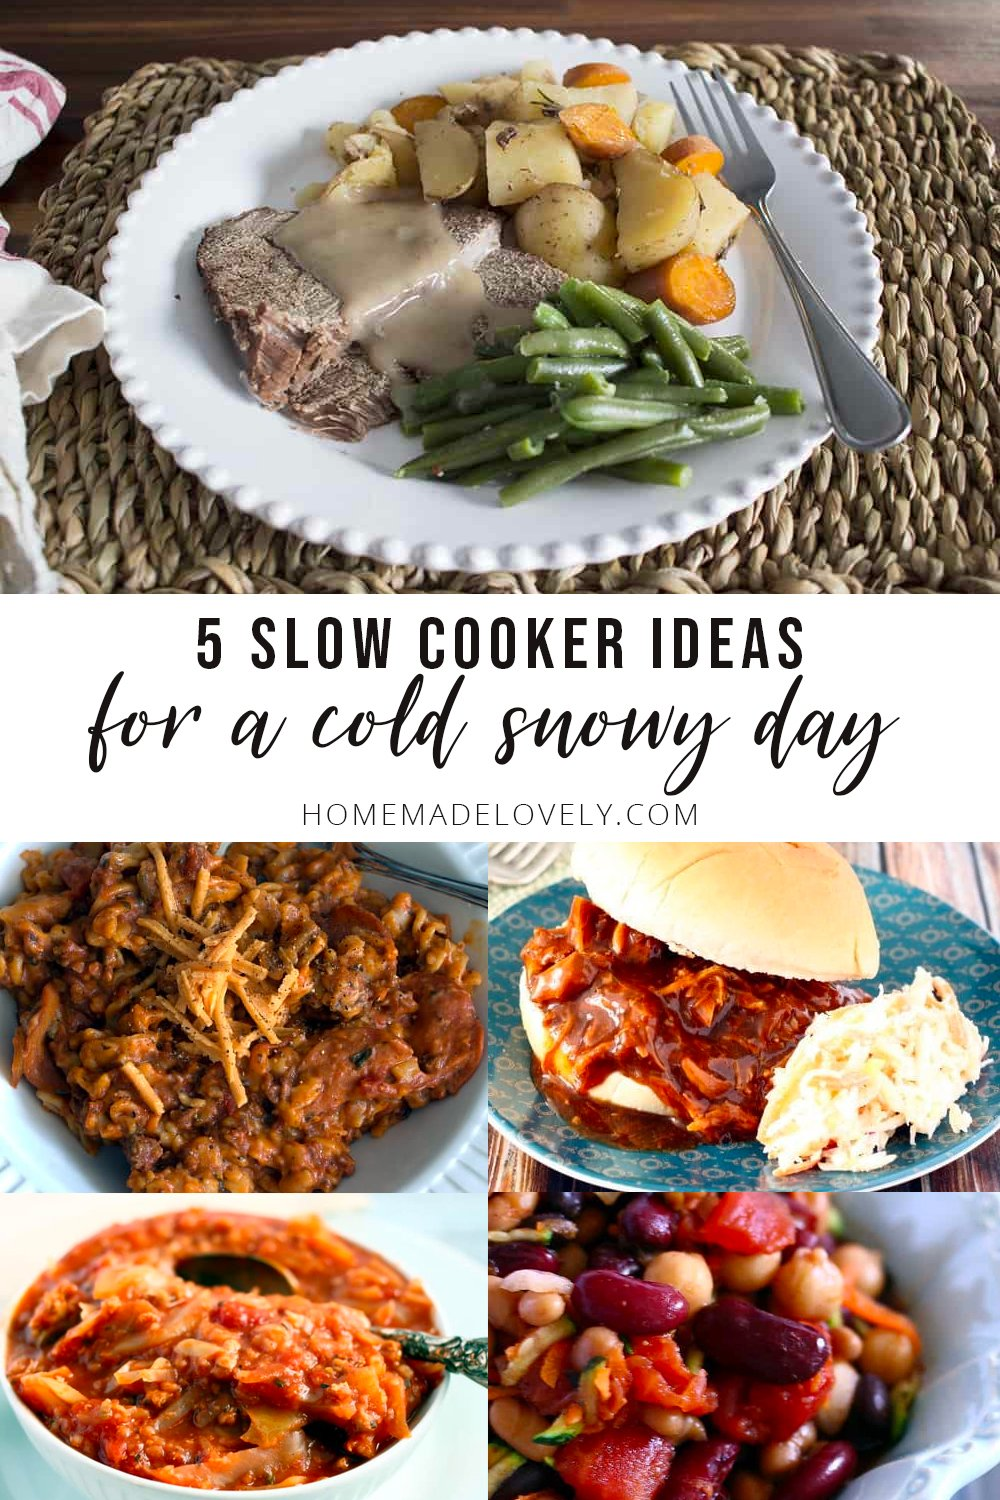 5 Slow Cooker Recipes for a Snow Day